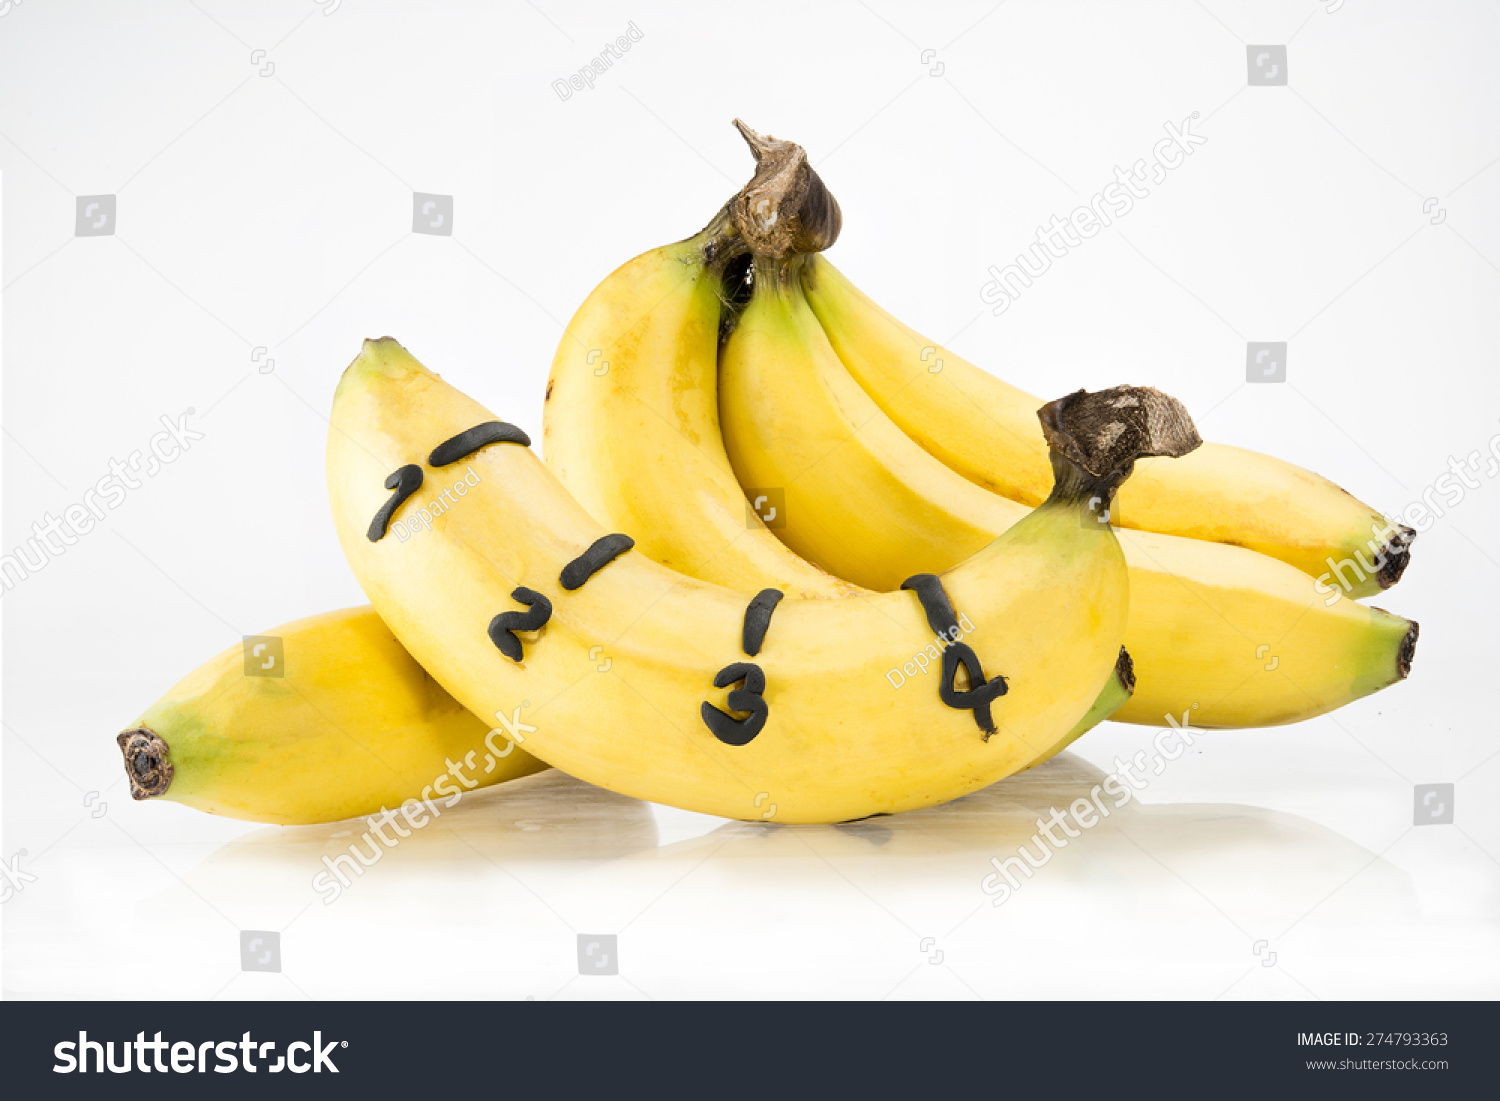 Banana Number Length On Yellow Peel Stock Photo 274793363 - Shutterstock-7608